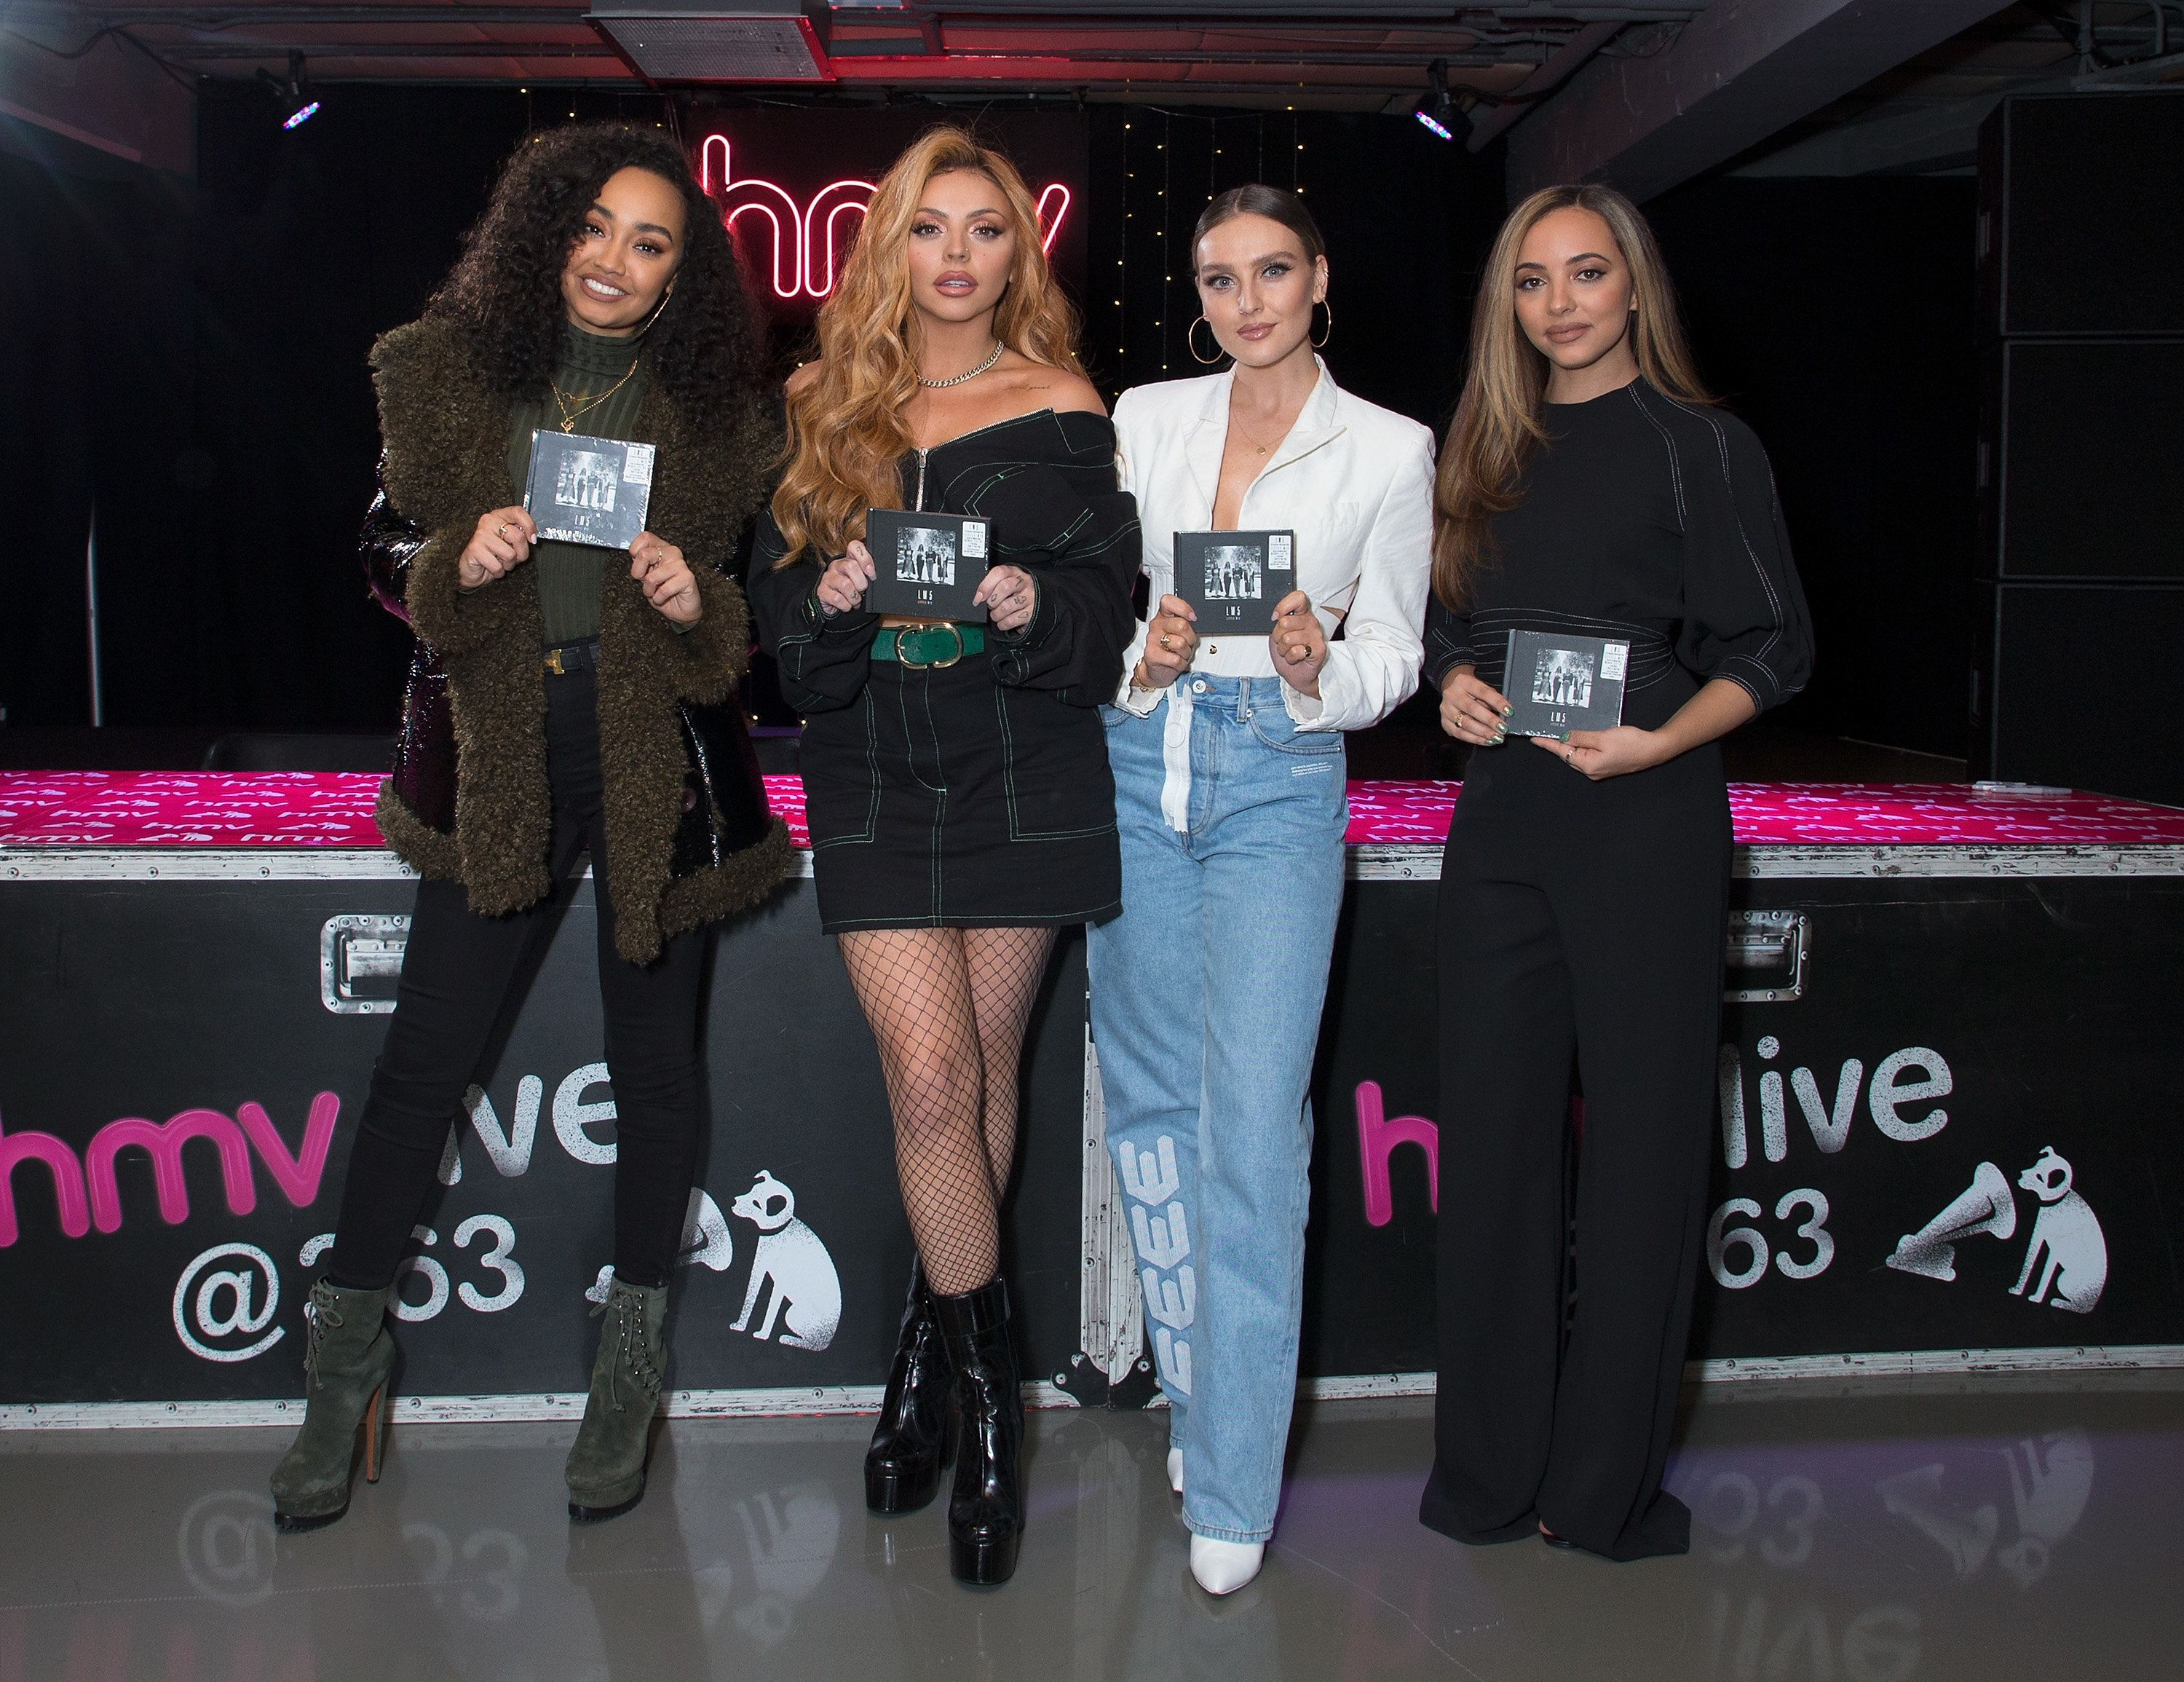 LONDON, ENGLAND - NOVEMBER 19:  (L-R) Leigh_Anne Pinnock, Jesy Nelson, Perrie Edwards and Jade Thirlwall sign copies of their new Album LM5 at HMV Oxford Street on November 20, 2018 in London, England.  (Photo by Jo Hale/Redferns)